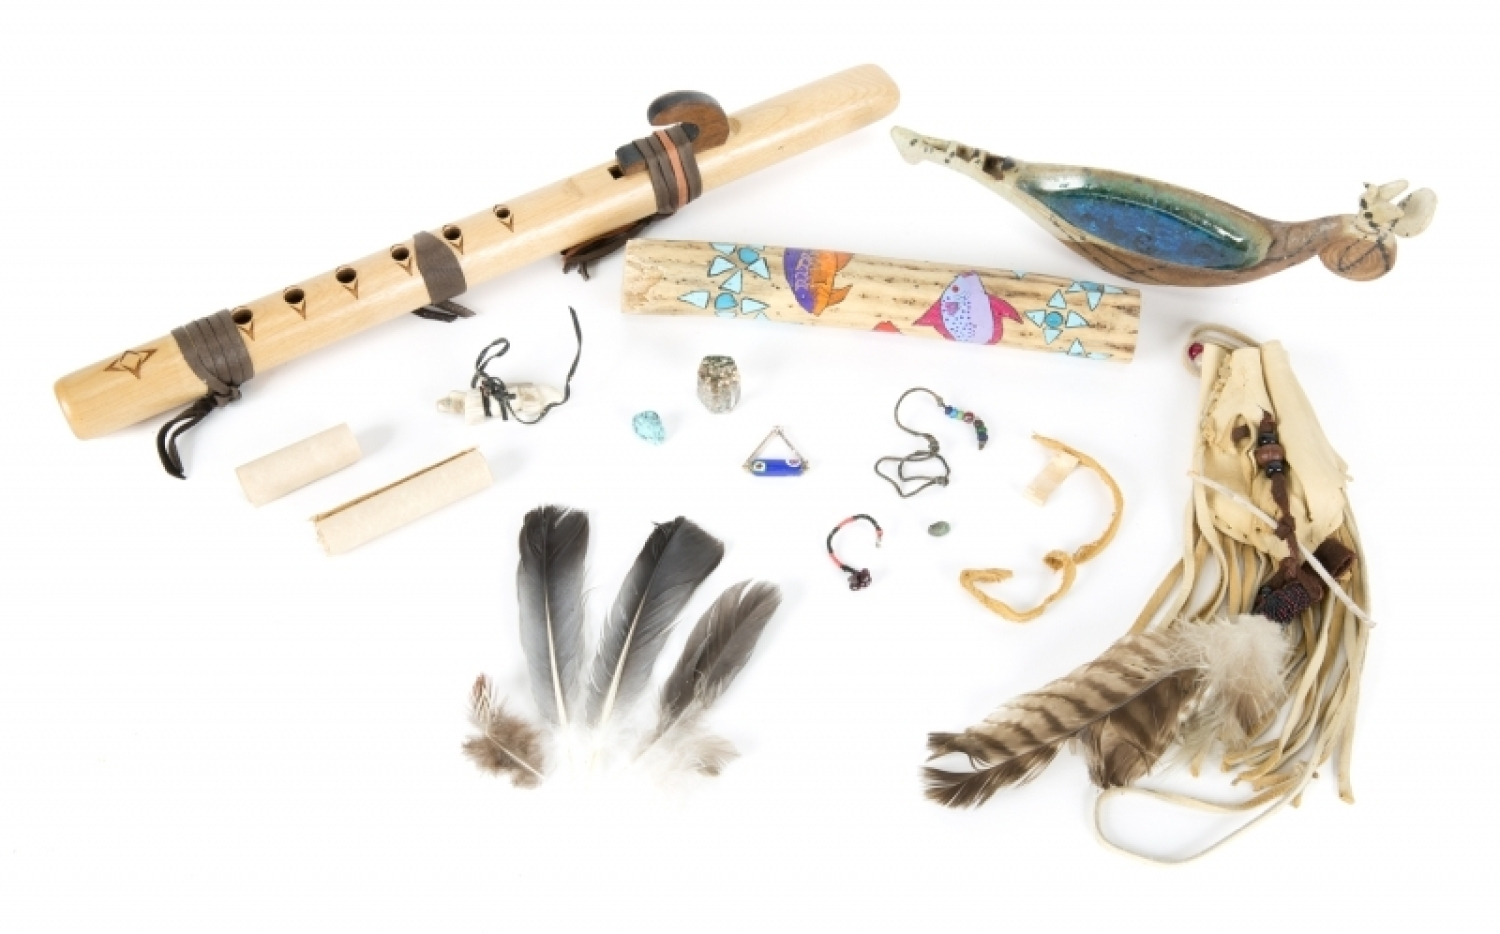 PATRICK SWAYZE NATIVE AMERICAN SPIRITUAL ITEMS - Current price: $600